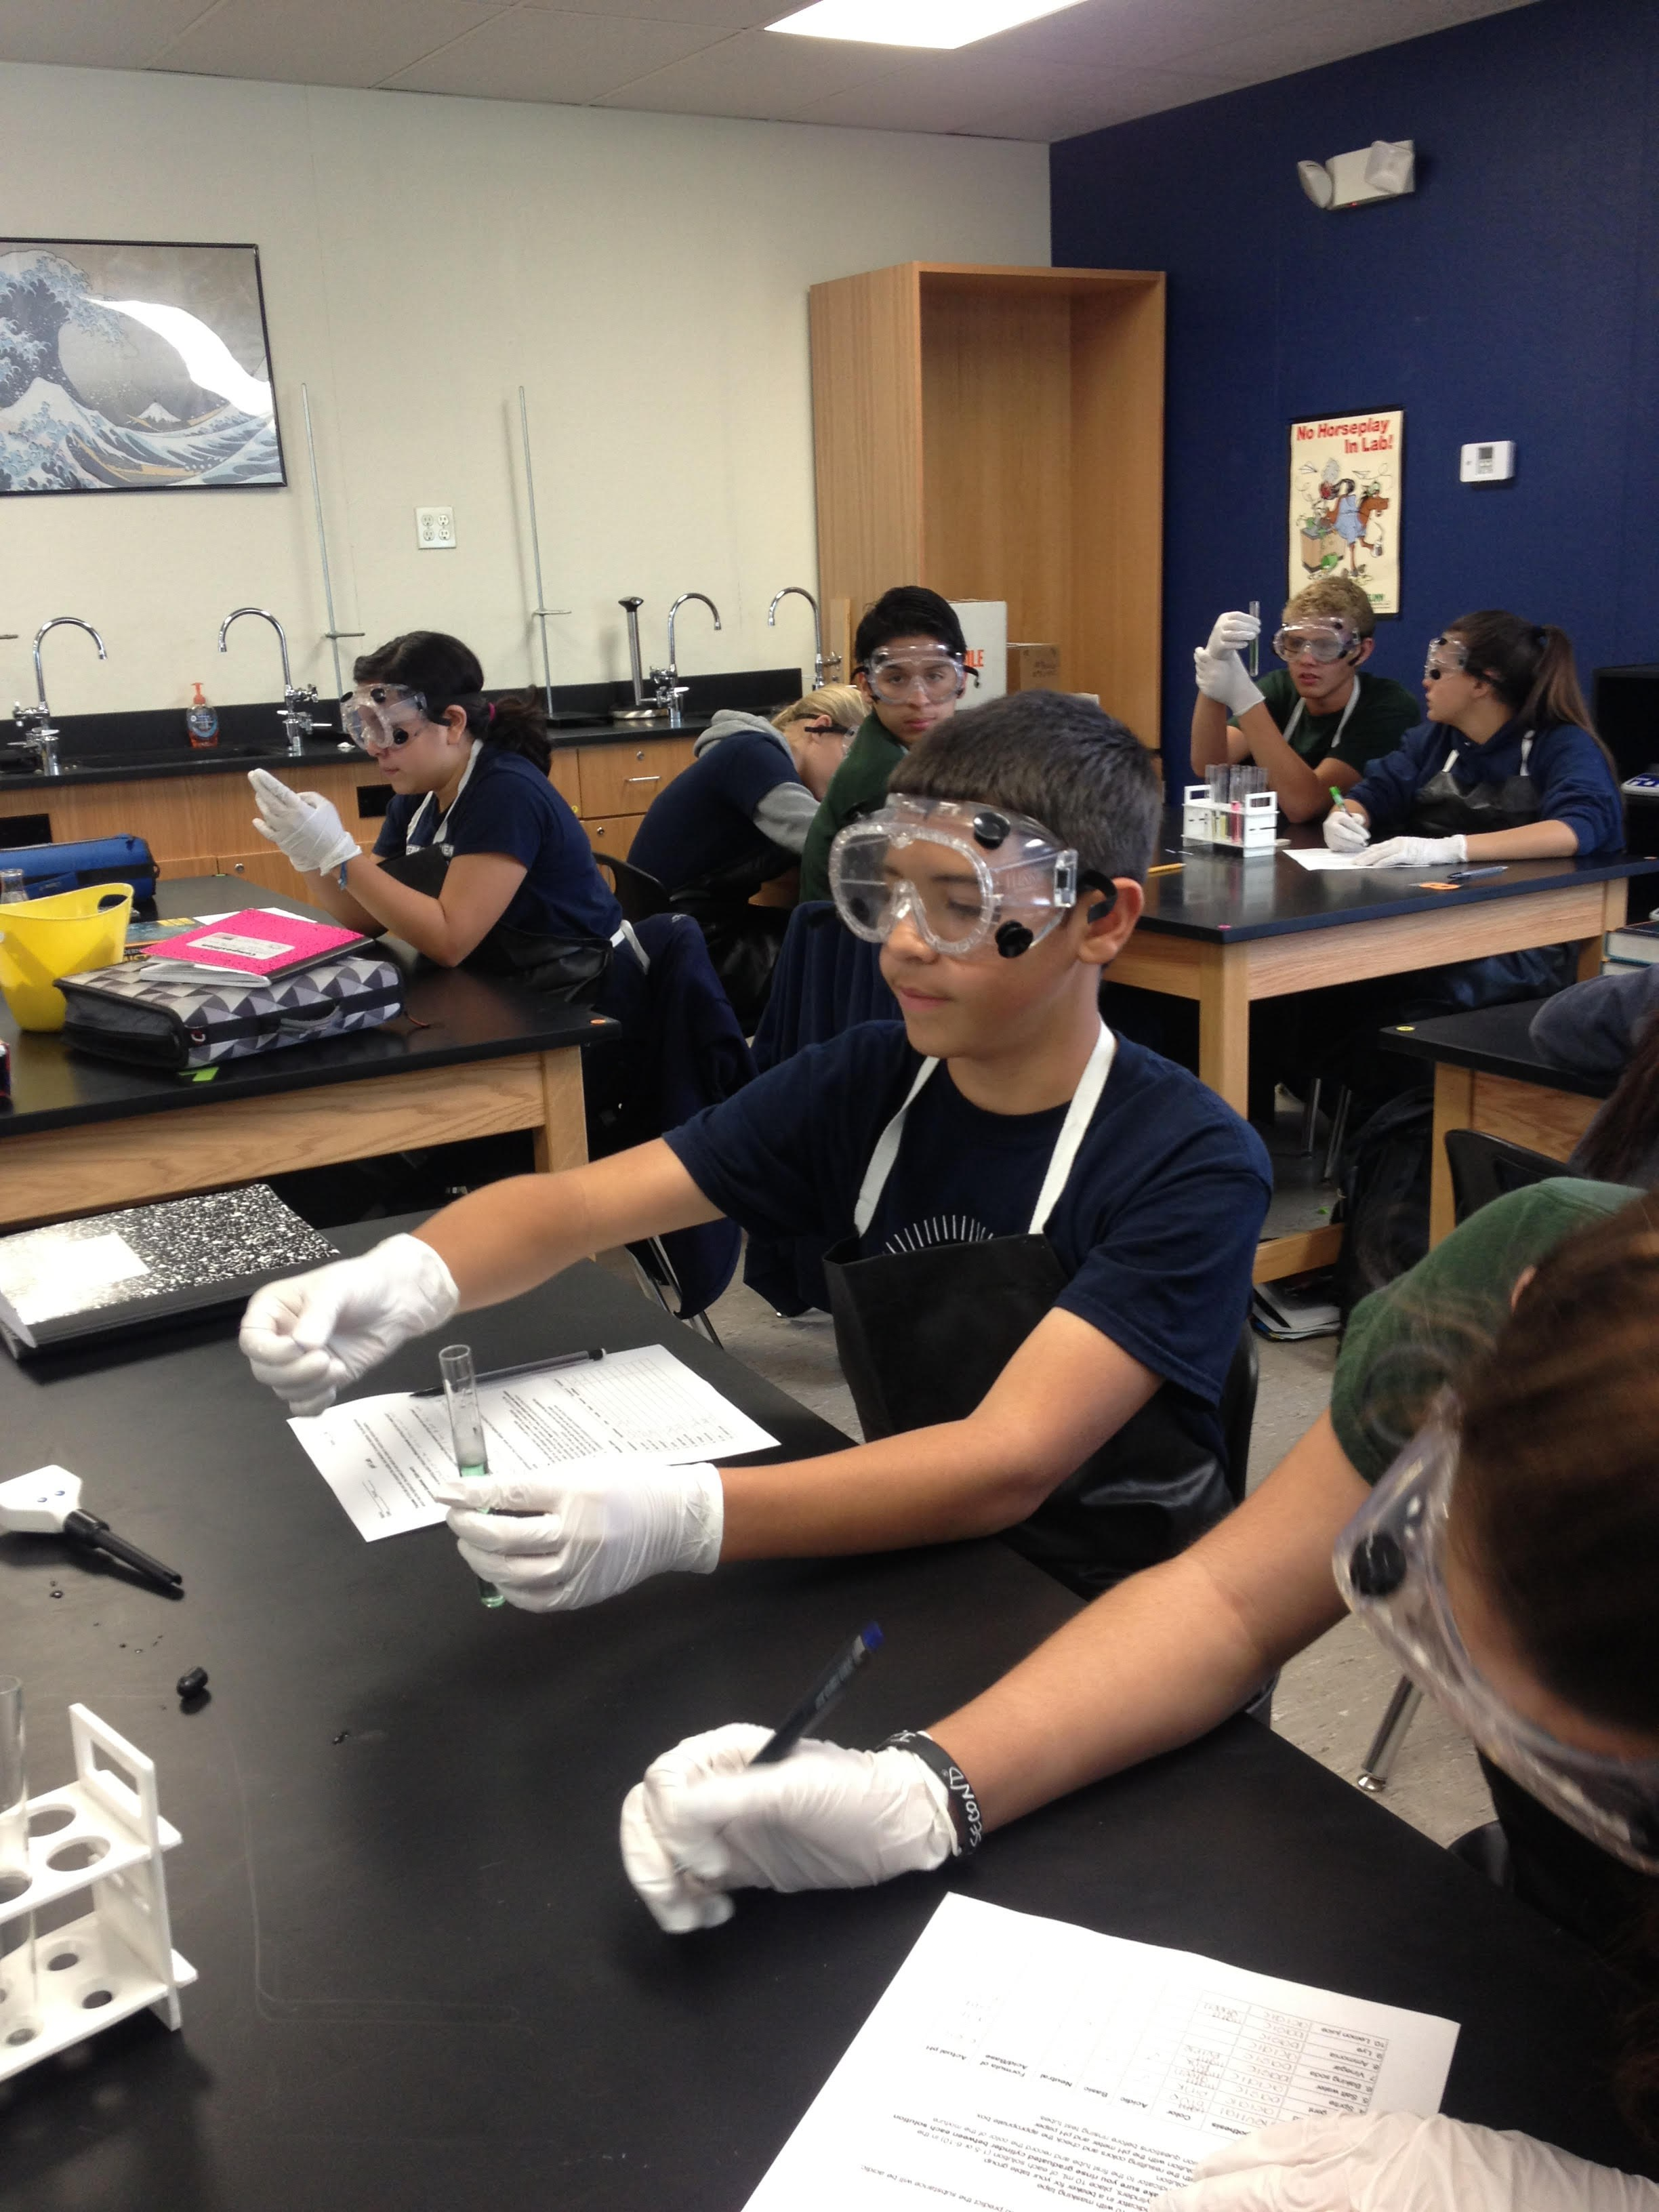 The ninth graders look hard at work testing out acids and bases in Mrs. Vargas' chemistry lab.